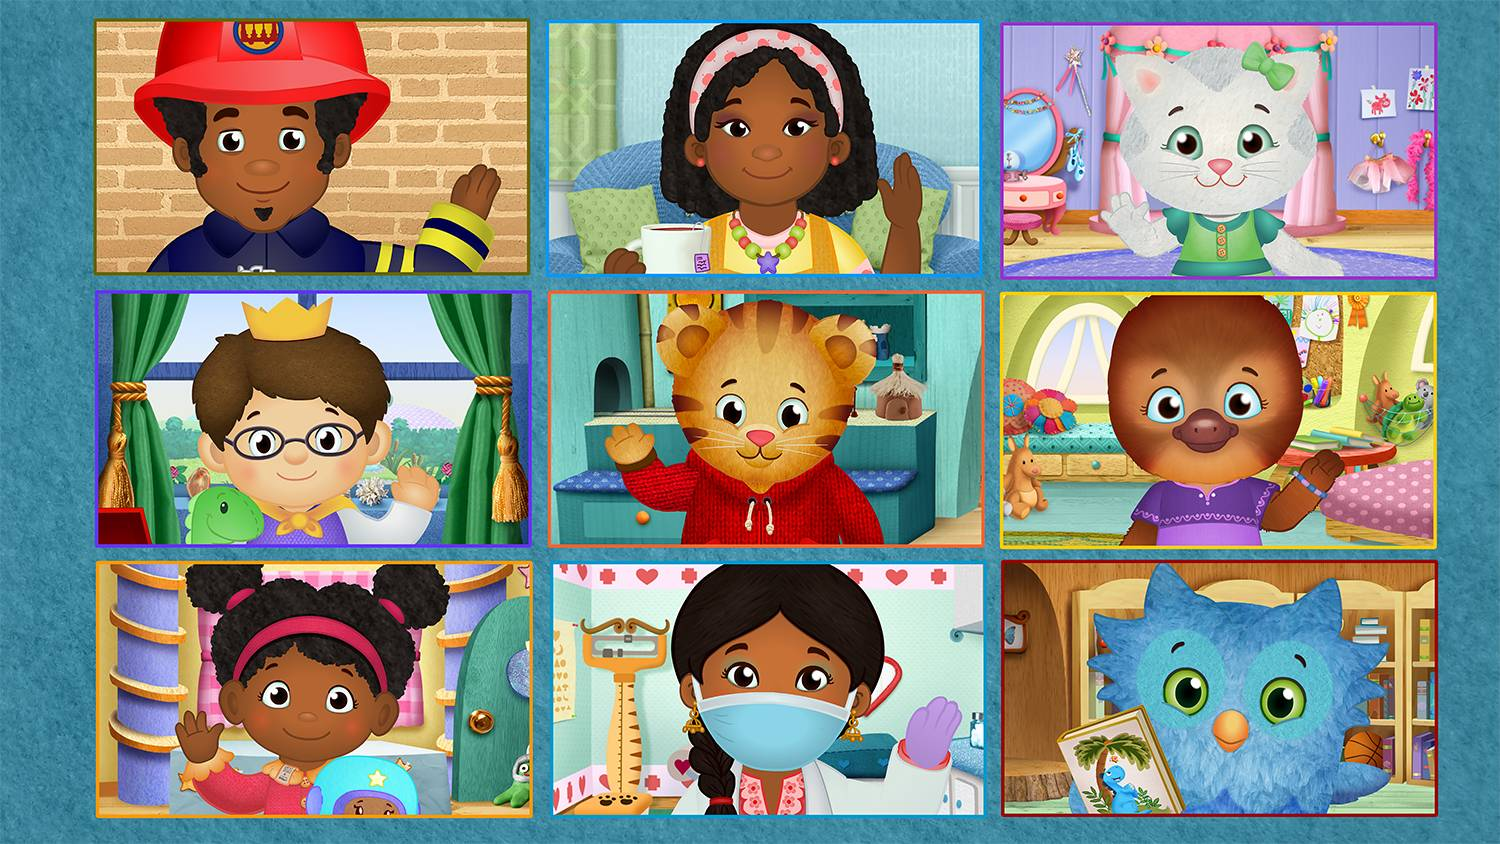 Daniel Tiger Christmas Episode 2020 New DANIEL TIGER'S NEIGHBORHOOD Special, Created in Response to